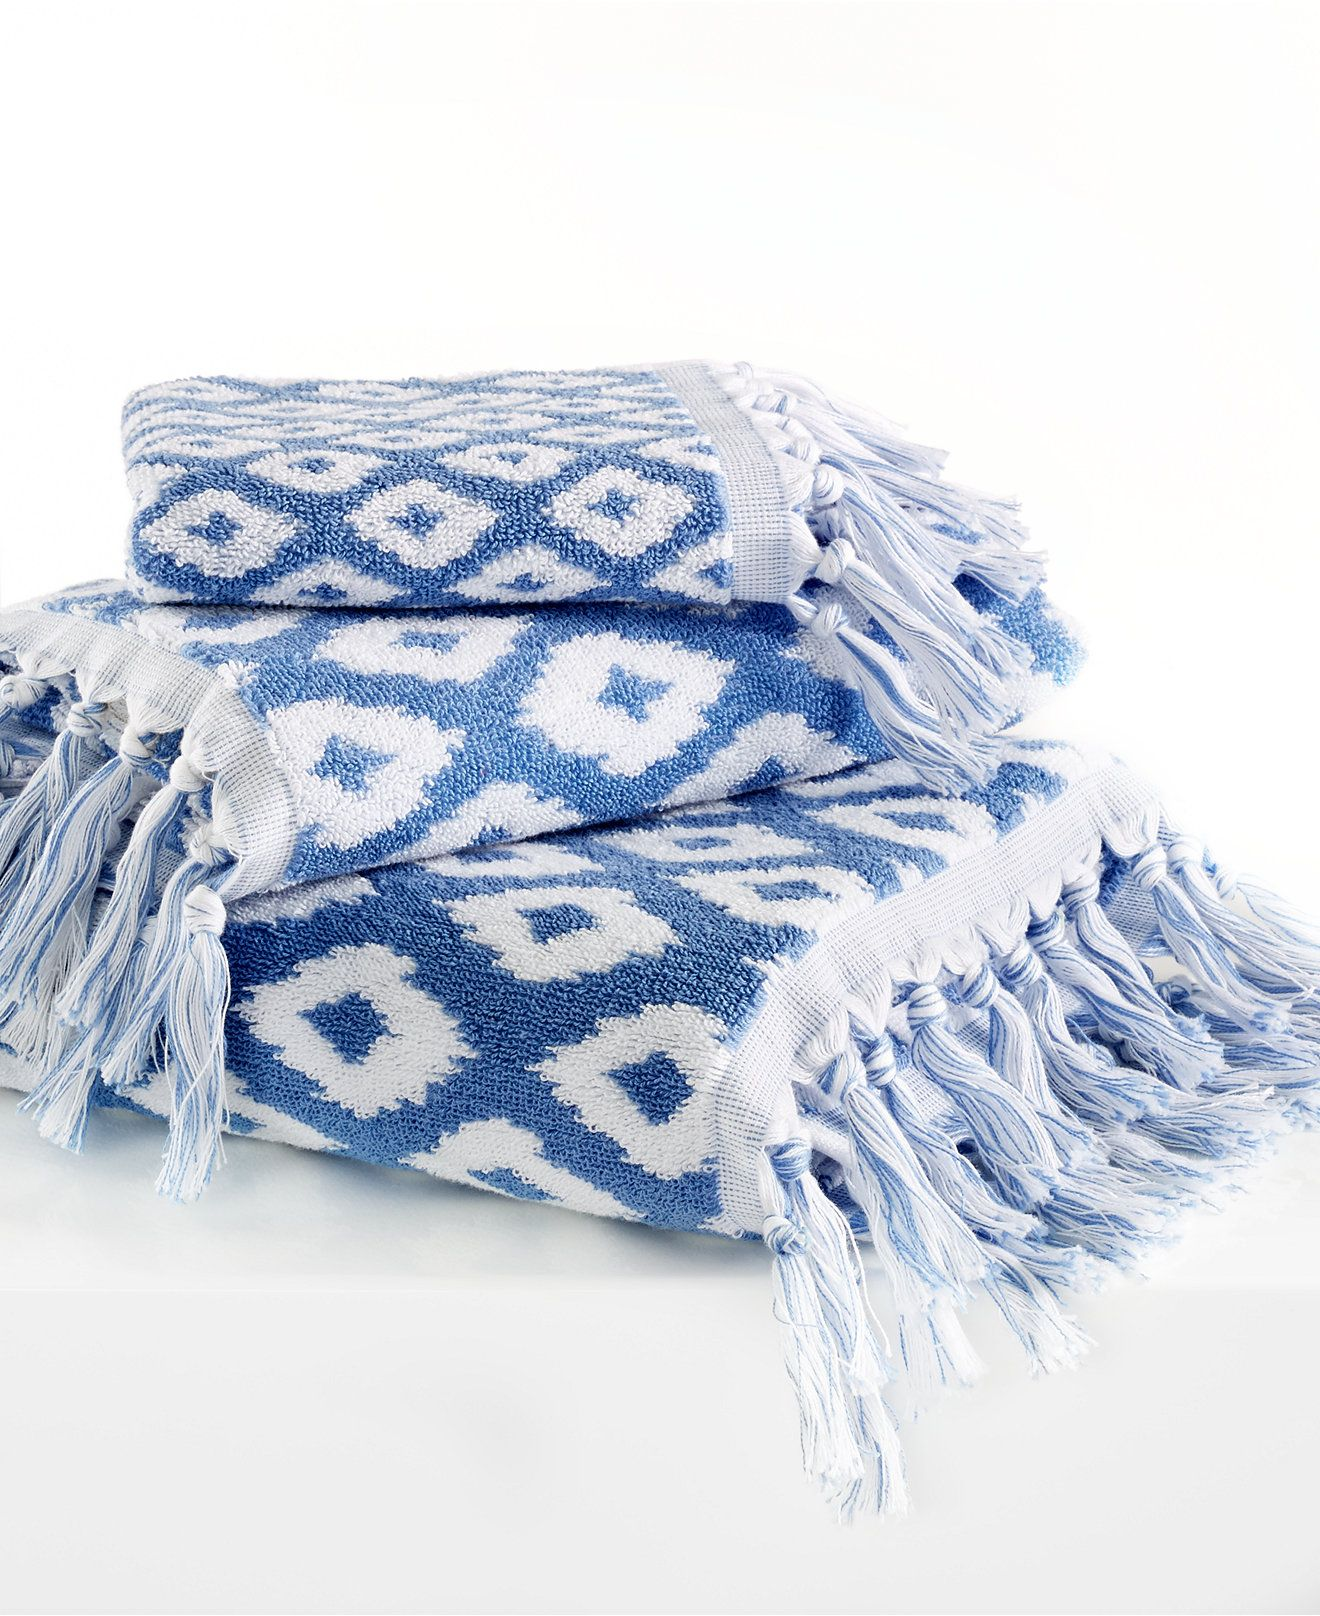 Dena Home Madison Jacquard Bath Towel Collection Towels Bath - Blue patterned towels for small bathroom ideas